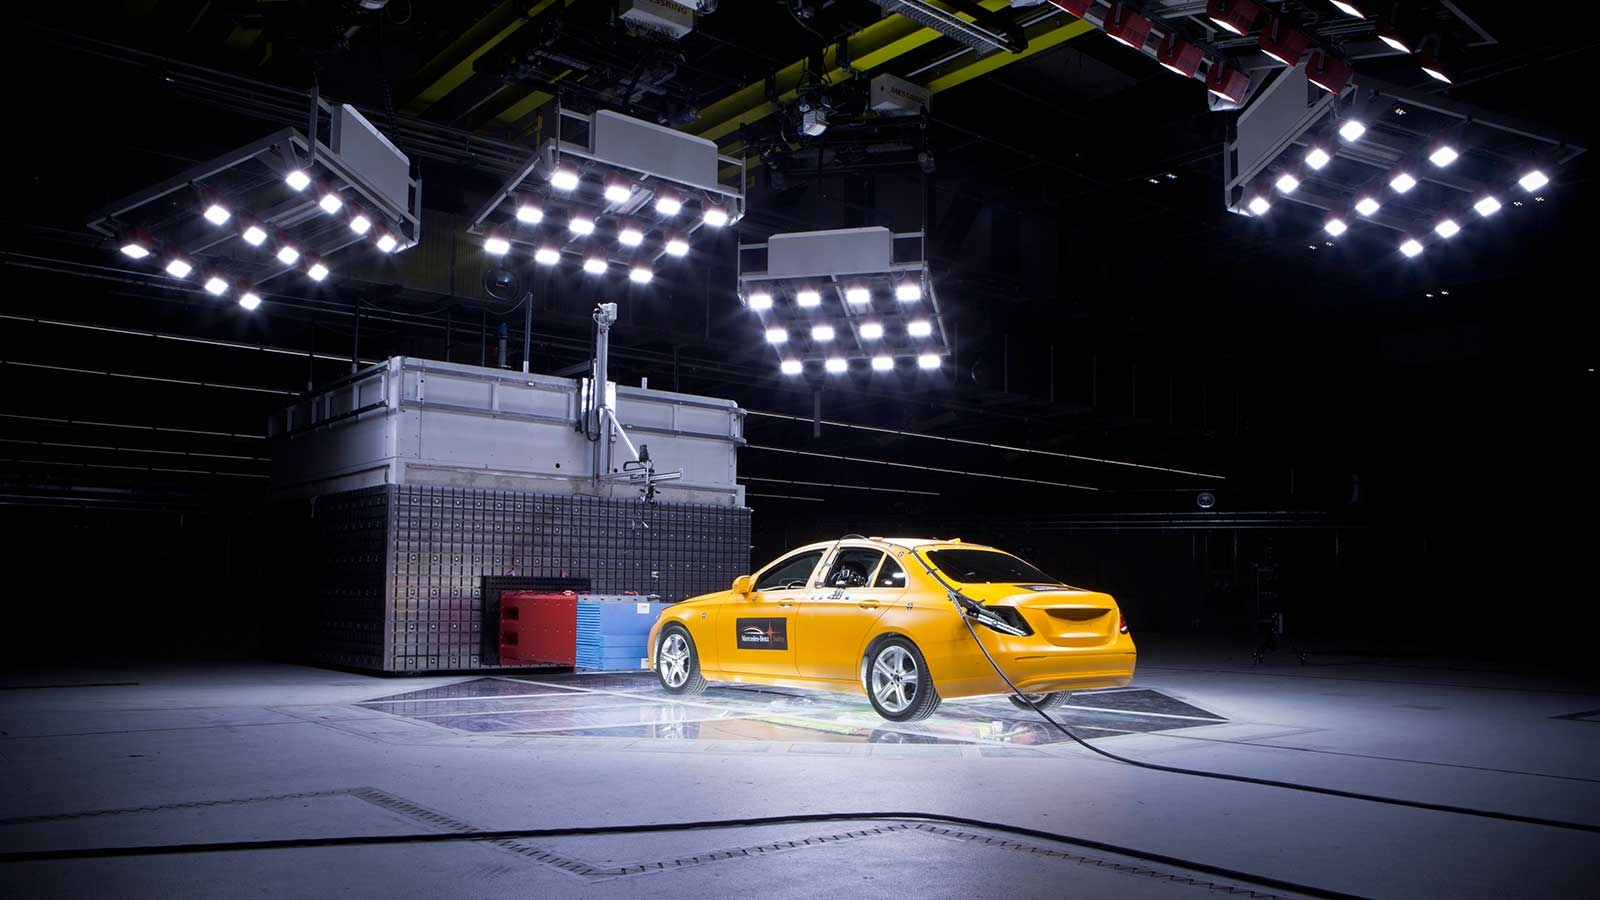 Automotive Active Safety System Market – Industry Analysis, Size, Share, Growth, Trends, and Forecast 2020-2026